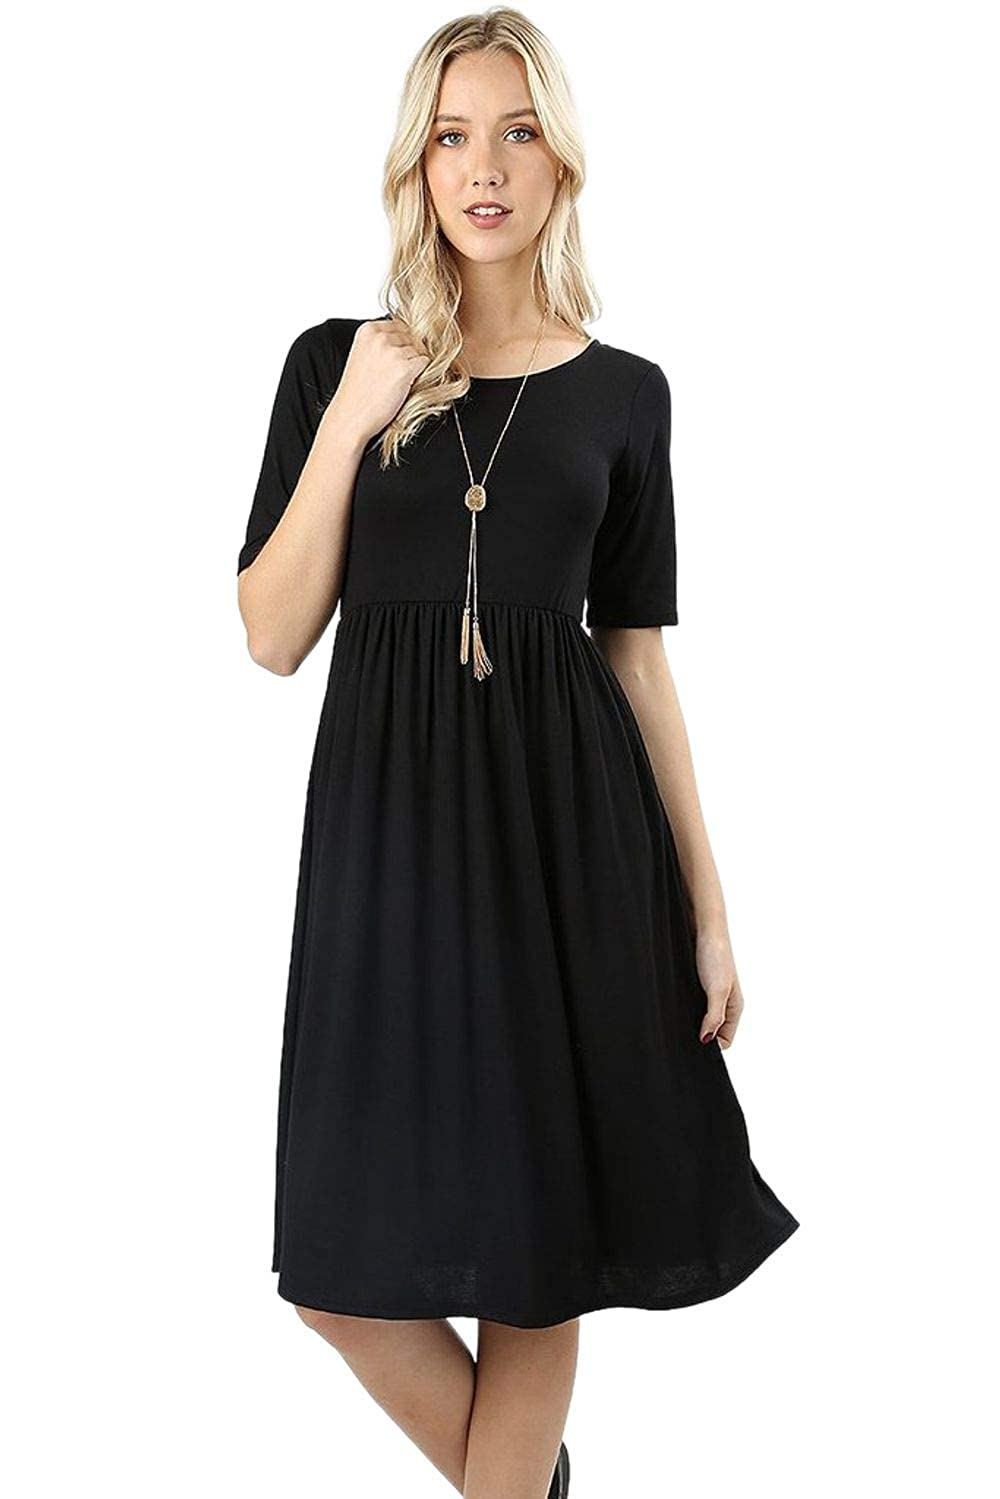 Black Women's Shirring Waist Dress Half Sleeve Casual TShirt Round Neck with Pockets